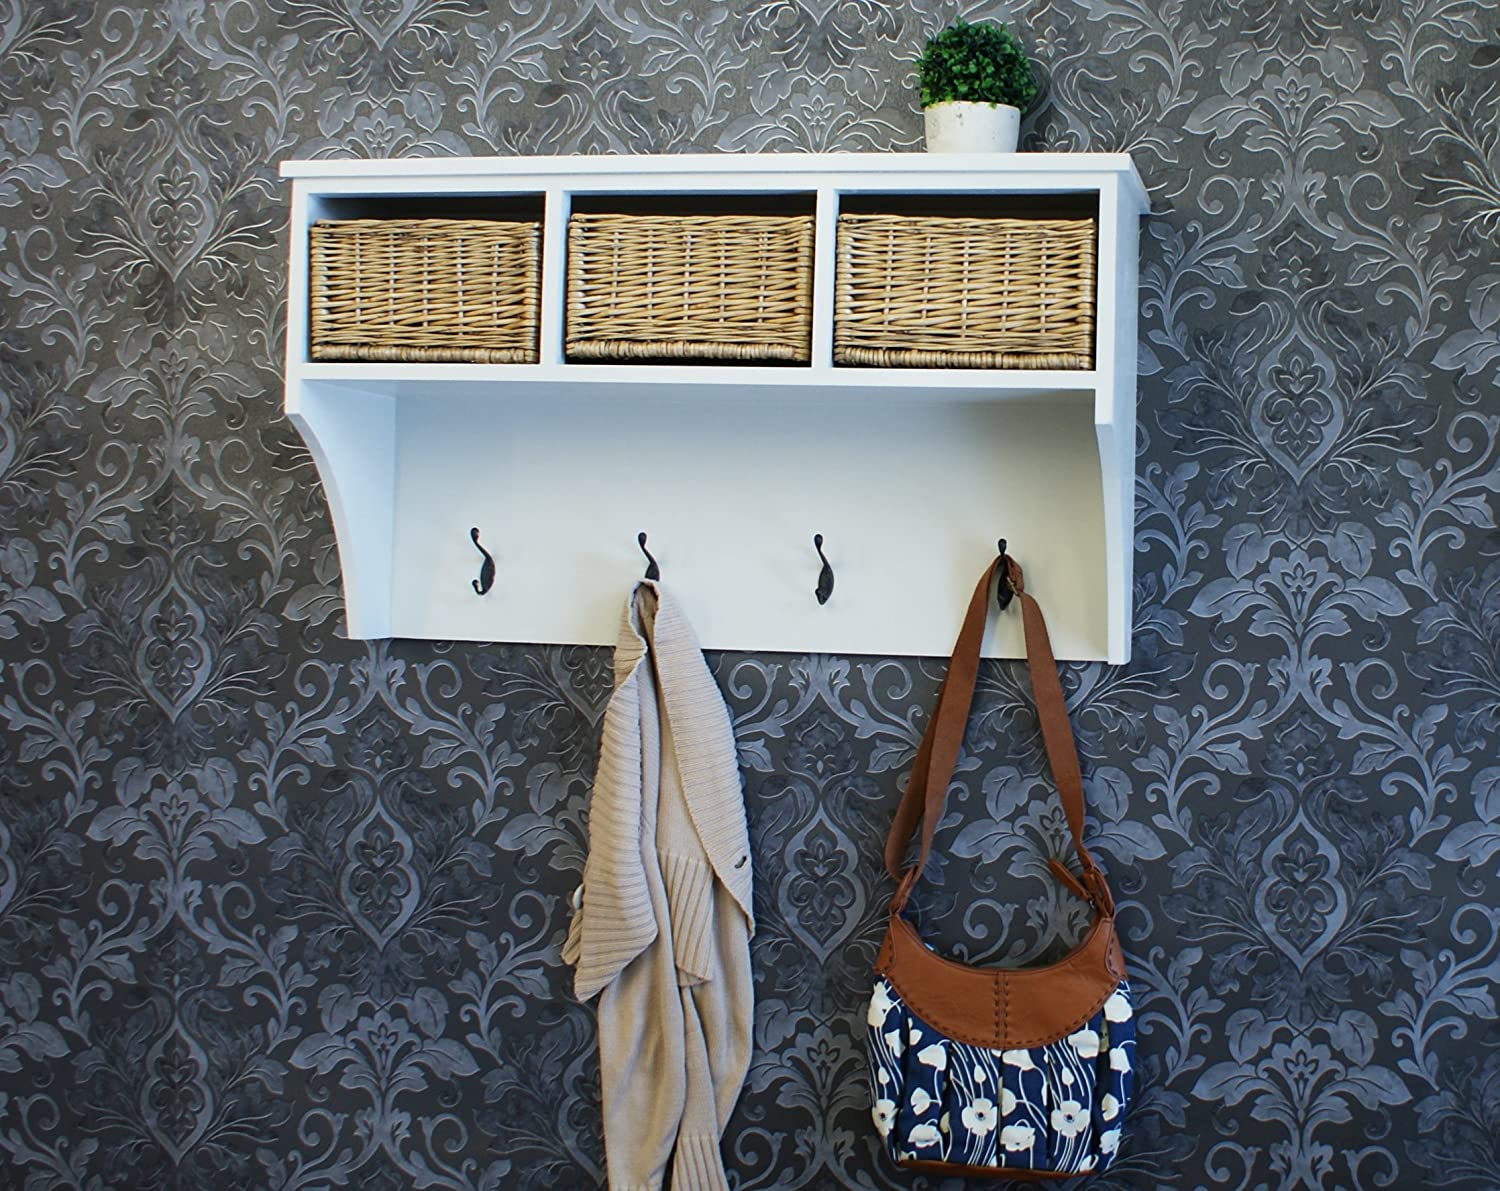 Gloucester Hallway Wall Hanging Coat Rack In Pearl White Finish With Hooks  And 3 X Wicker Rattan Basket Drawers, Farmhouse Style: Amazon.co.uk:  Kitchen U0026 ...